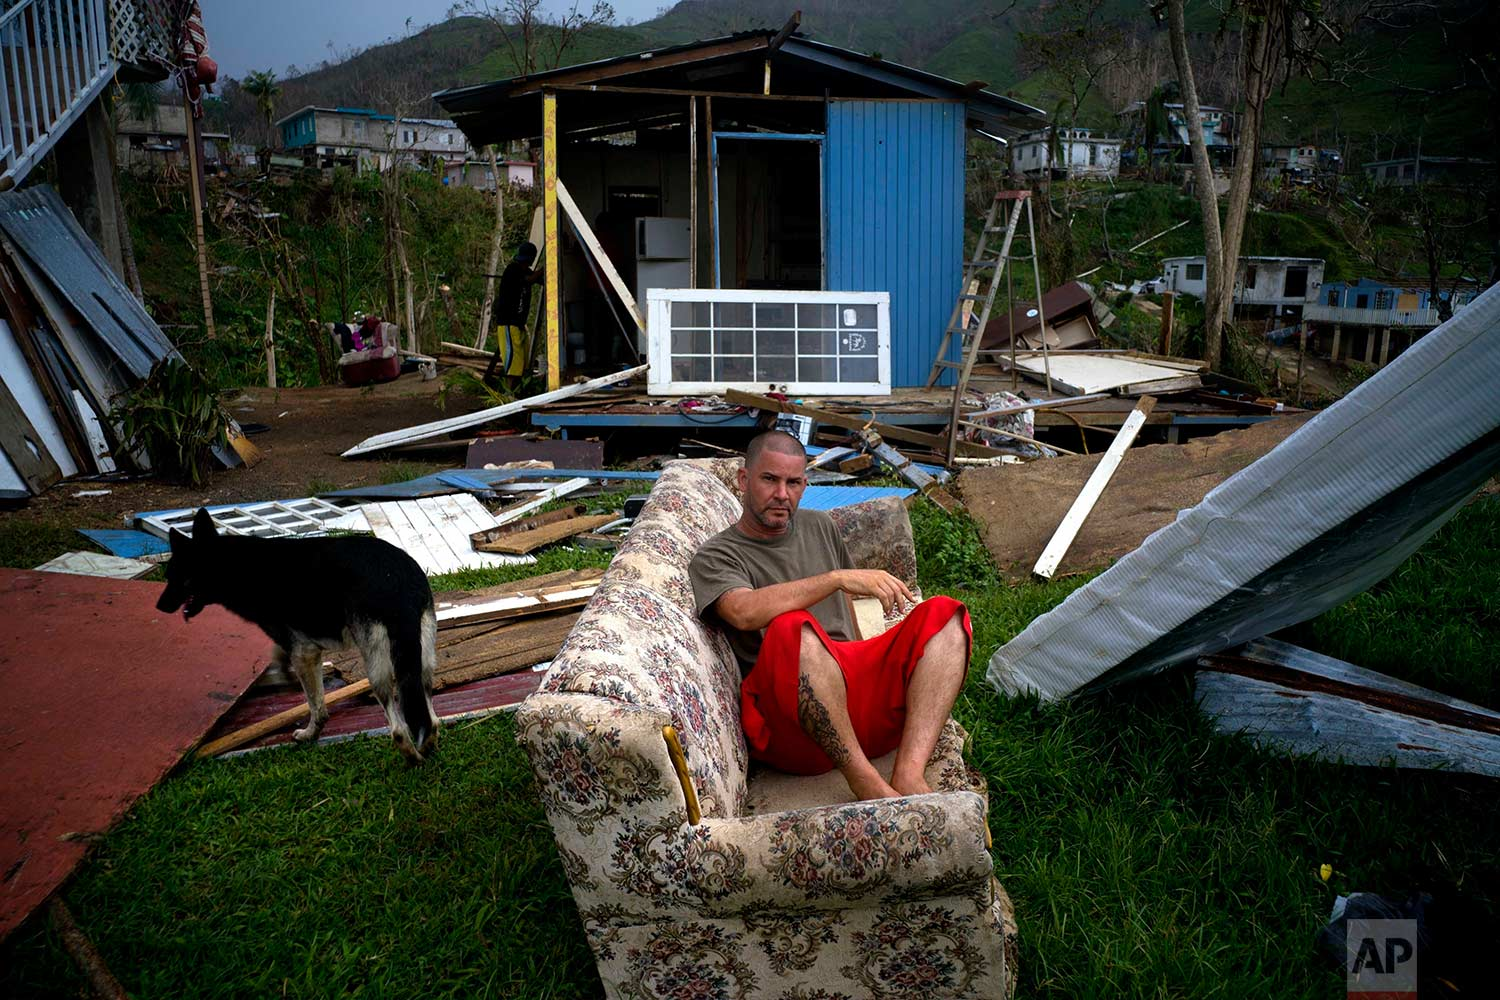 In this Saturday, Sept. 30, 2017 photo, Angel Rodriguez poses next to his belongings in front of his house, destroyed by Hurricane Maria, in the San Lorenzo neighborhood of Morovis, Puerto Rico. (AP Photo/Ramon Espinosa)